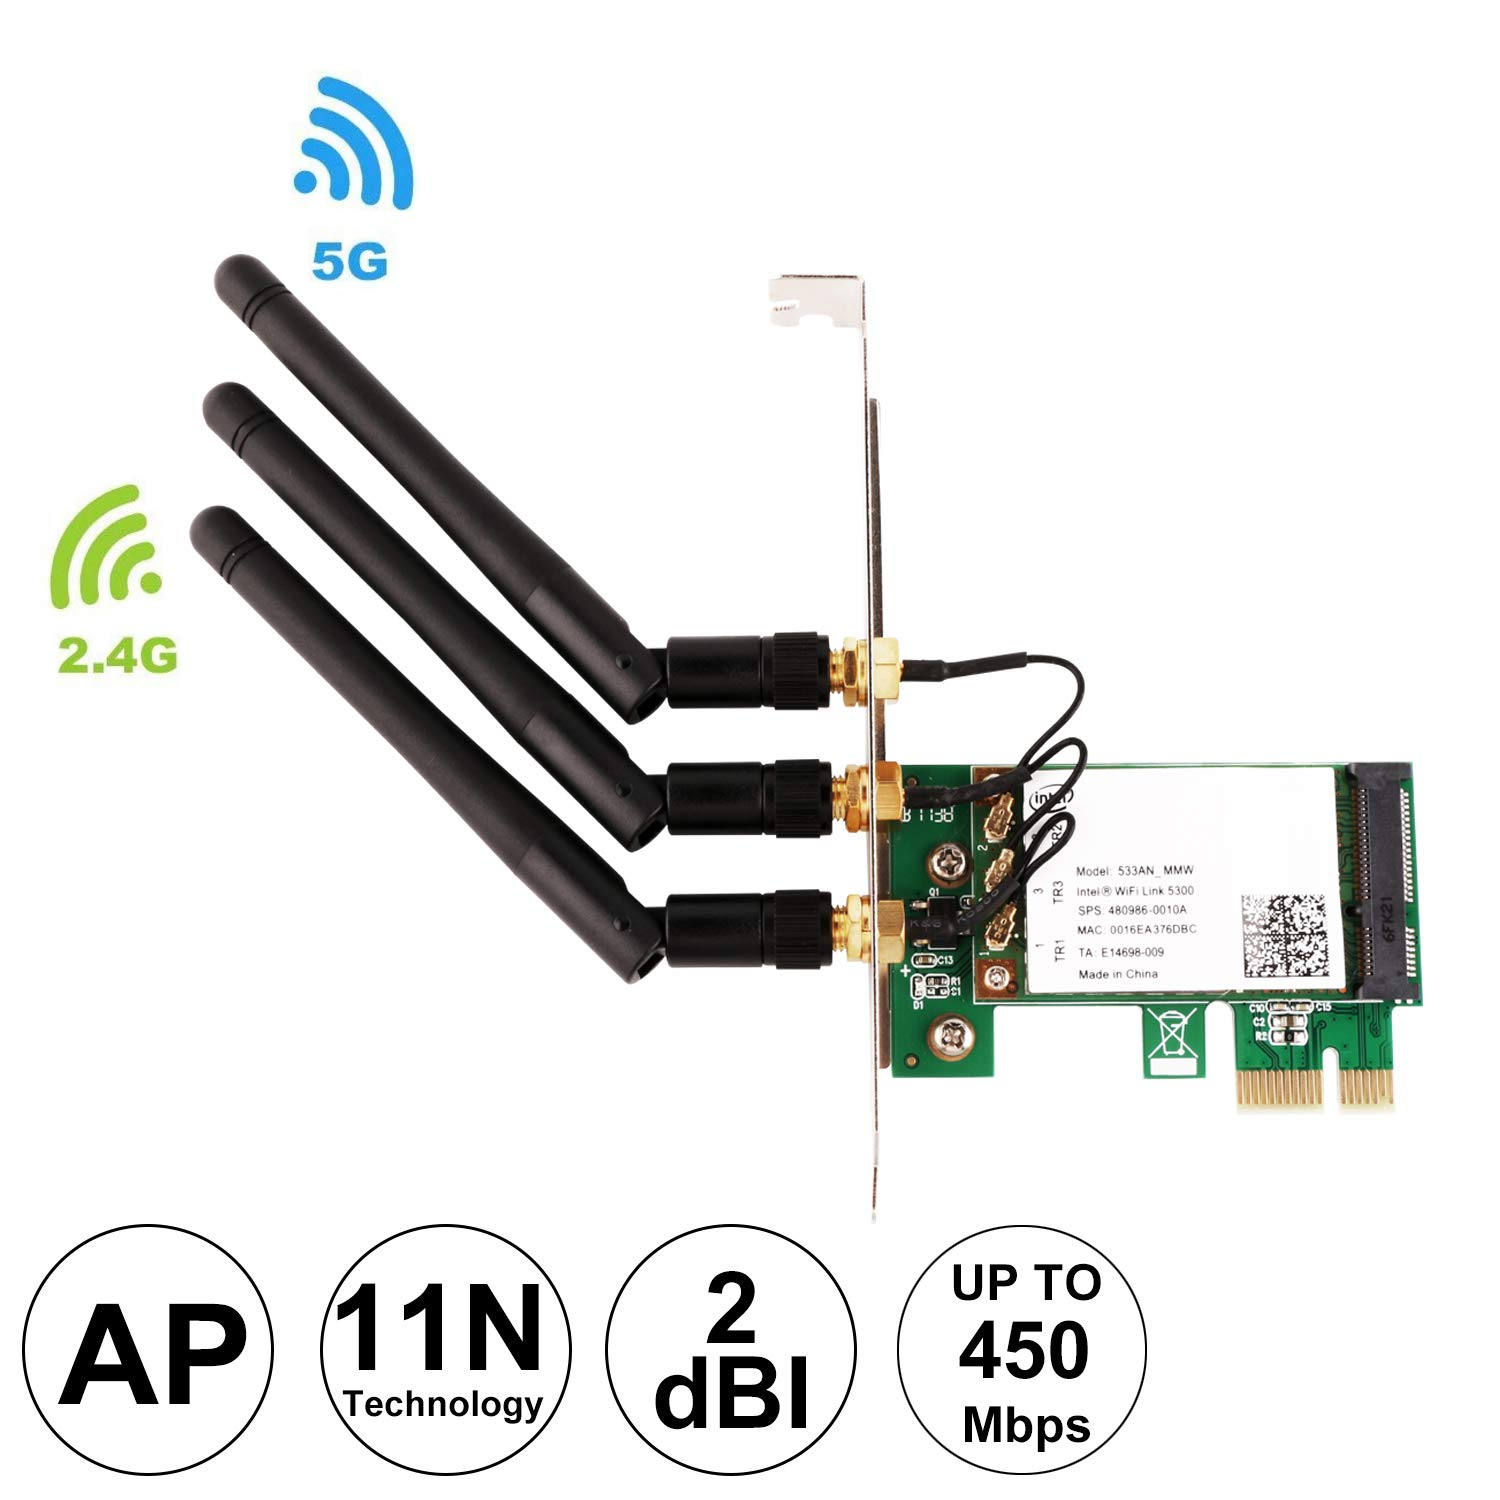 Ubit WIE5300 Wireless 450M Dual Band PCI Express (PCIe) Wi-Fi Adapter Network Card with 2dBi WiFi External Detachable Antenna for Desktop Computers(with AP Function)